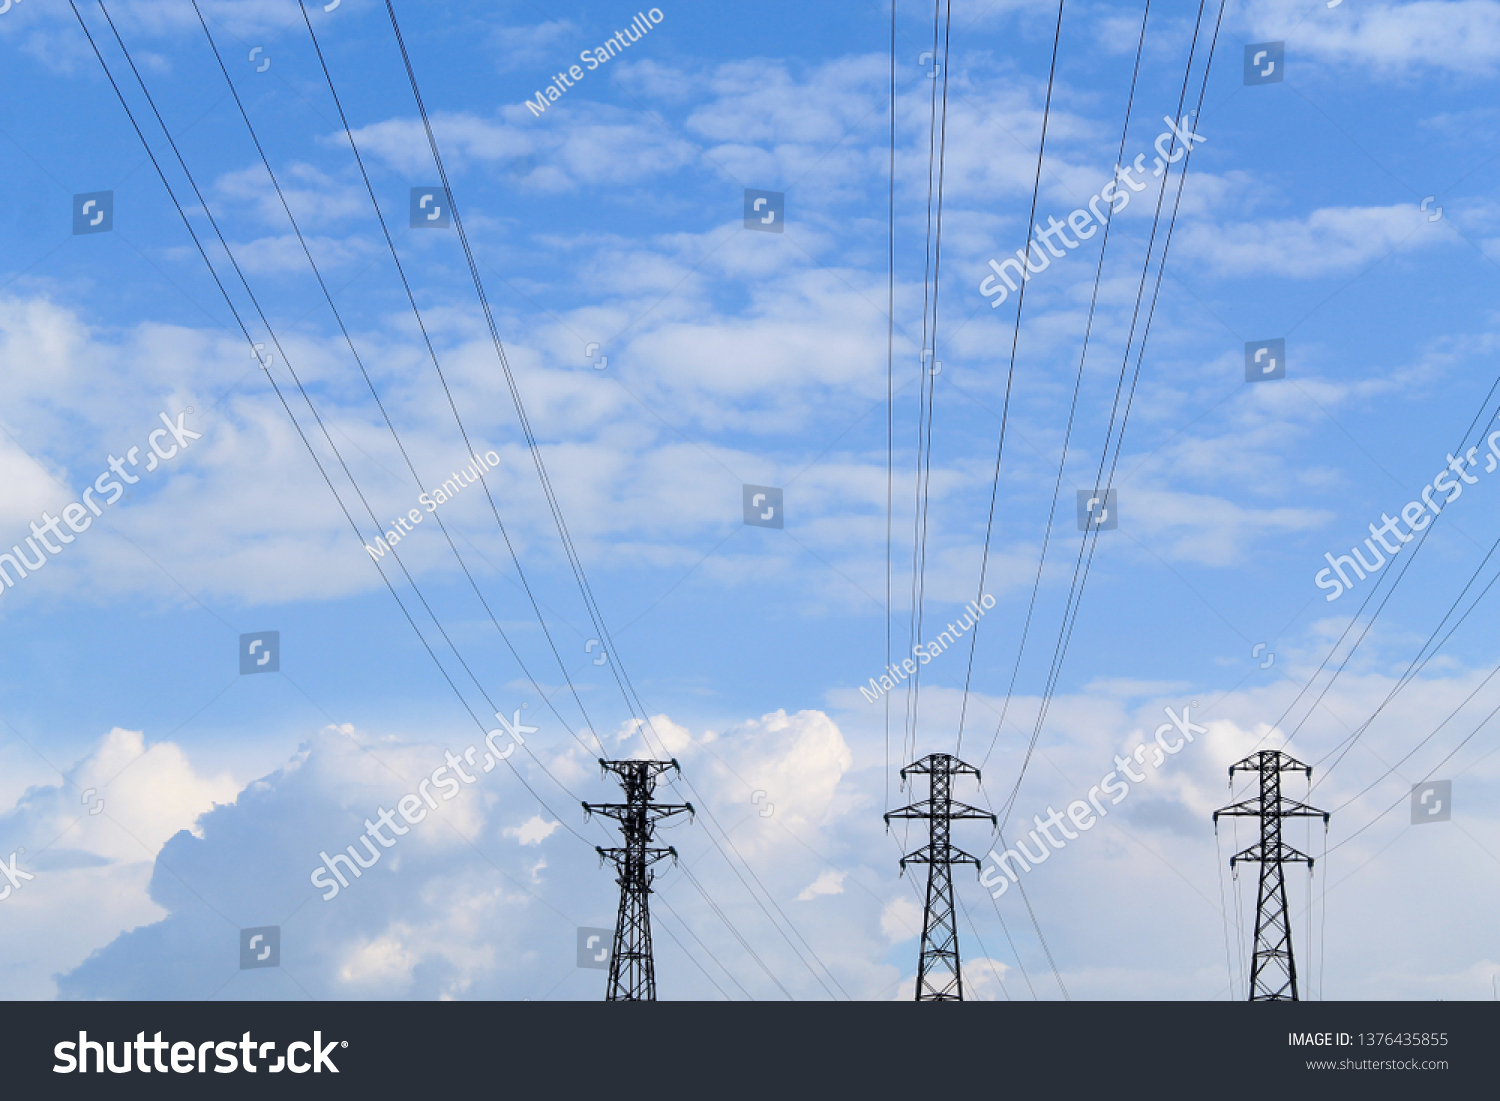 Three transmission towers before a blue cloudy sky. Cables of pwer towers over the sky. Electricity pylon wires coming from the electric pylons situated on the background. #1376435855